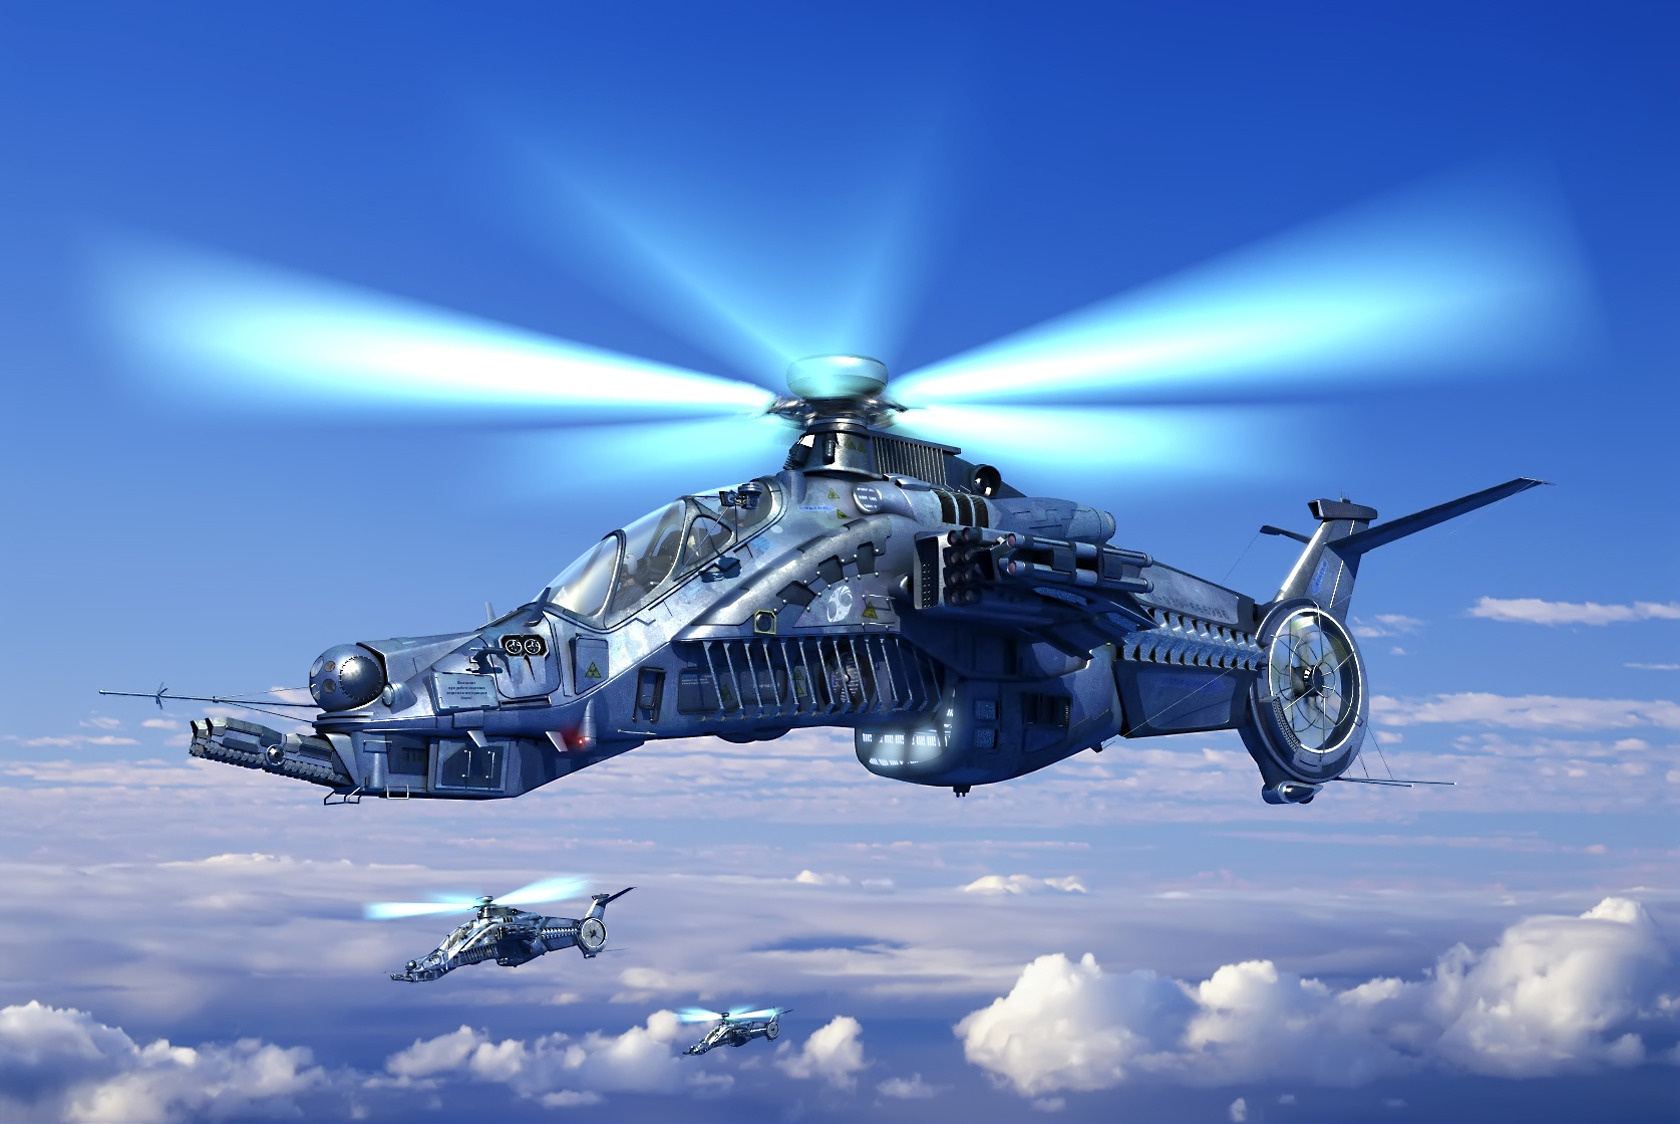 Wallpaper helicopter clouds desktop wallpaper Aircrafts and Planes 1680x1124